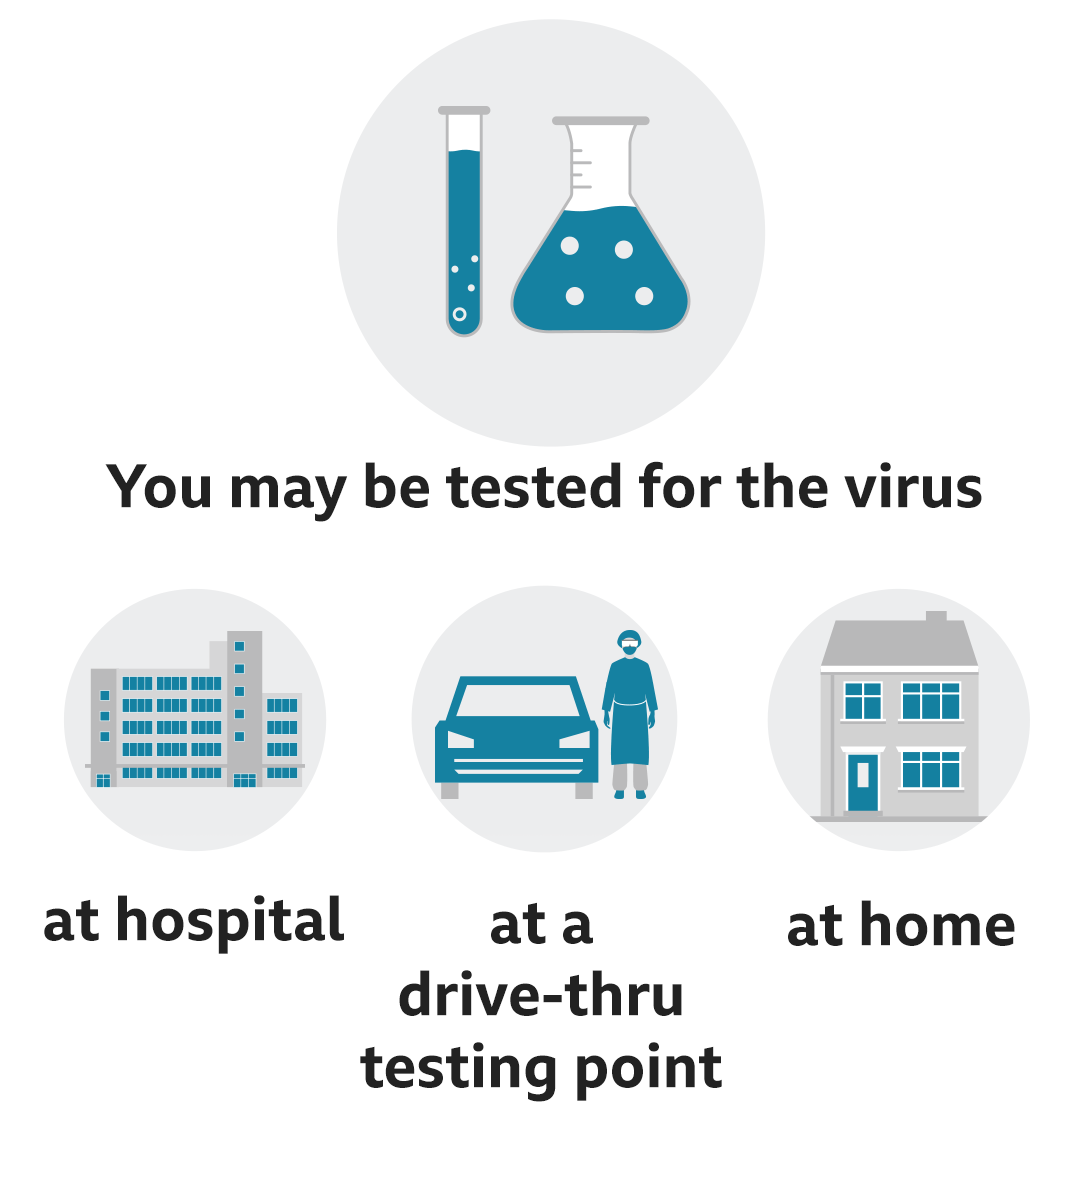 Text reads: You may be tested for the virus at hospital, at a drive-thru testing point, at home